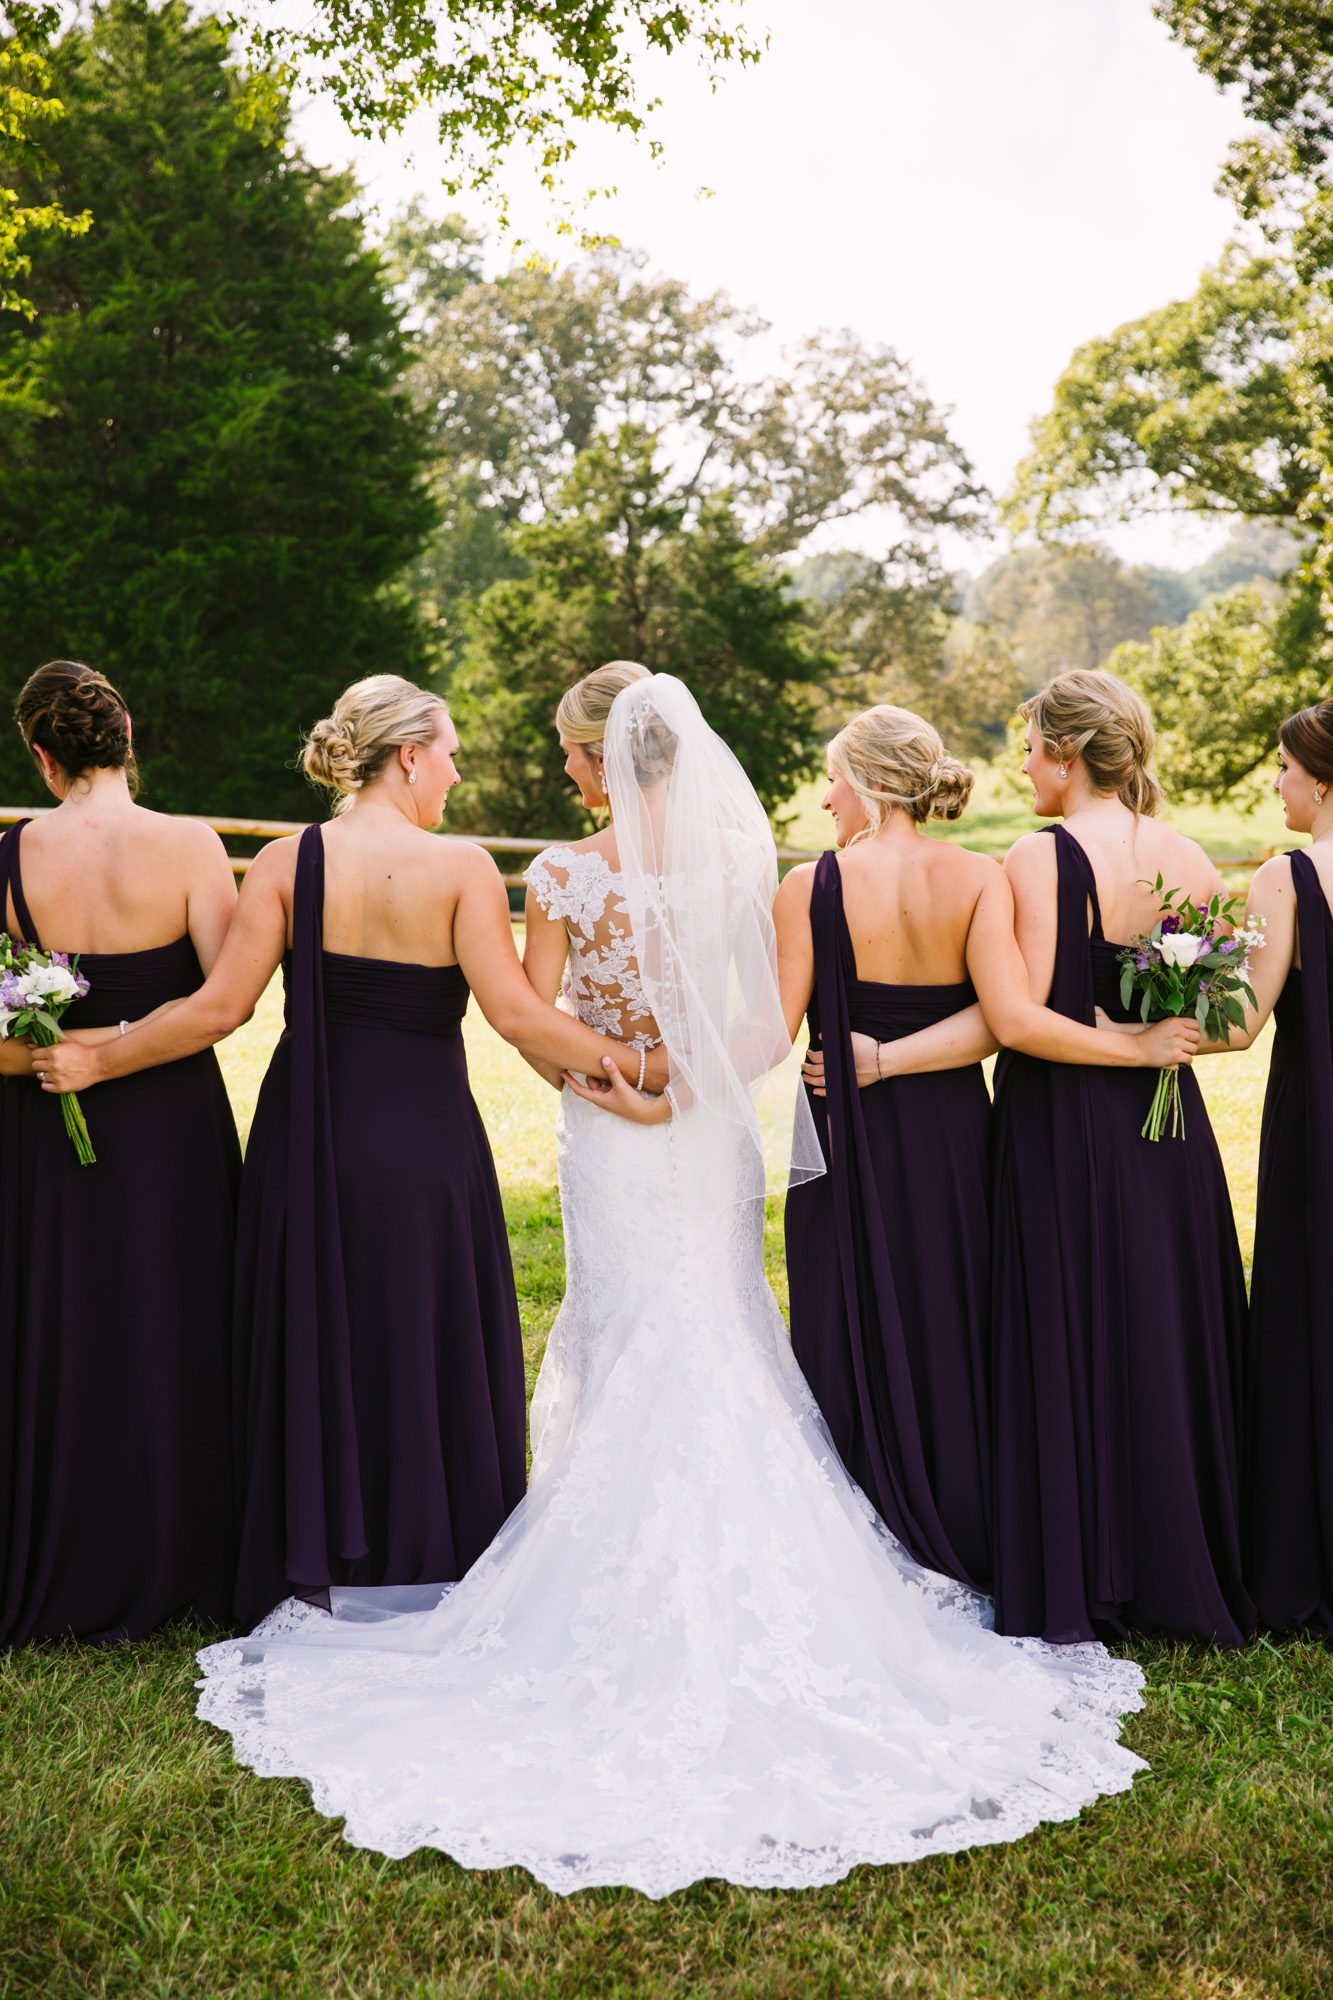 Waynesville, NC Wedding Photography | Bride and Bridesmaids Portrait